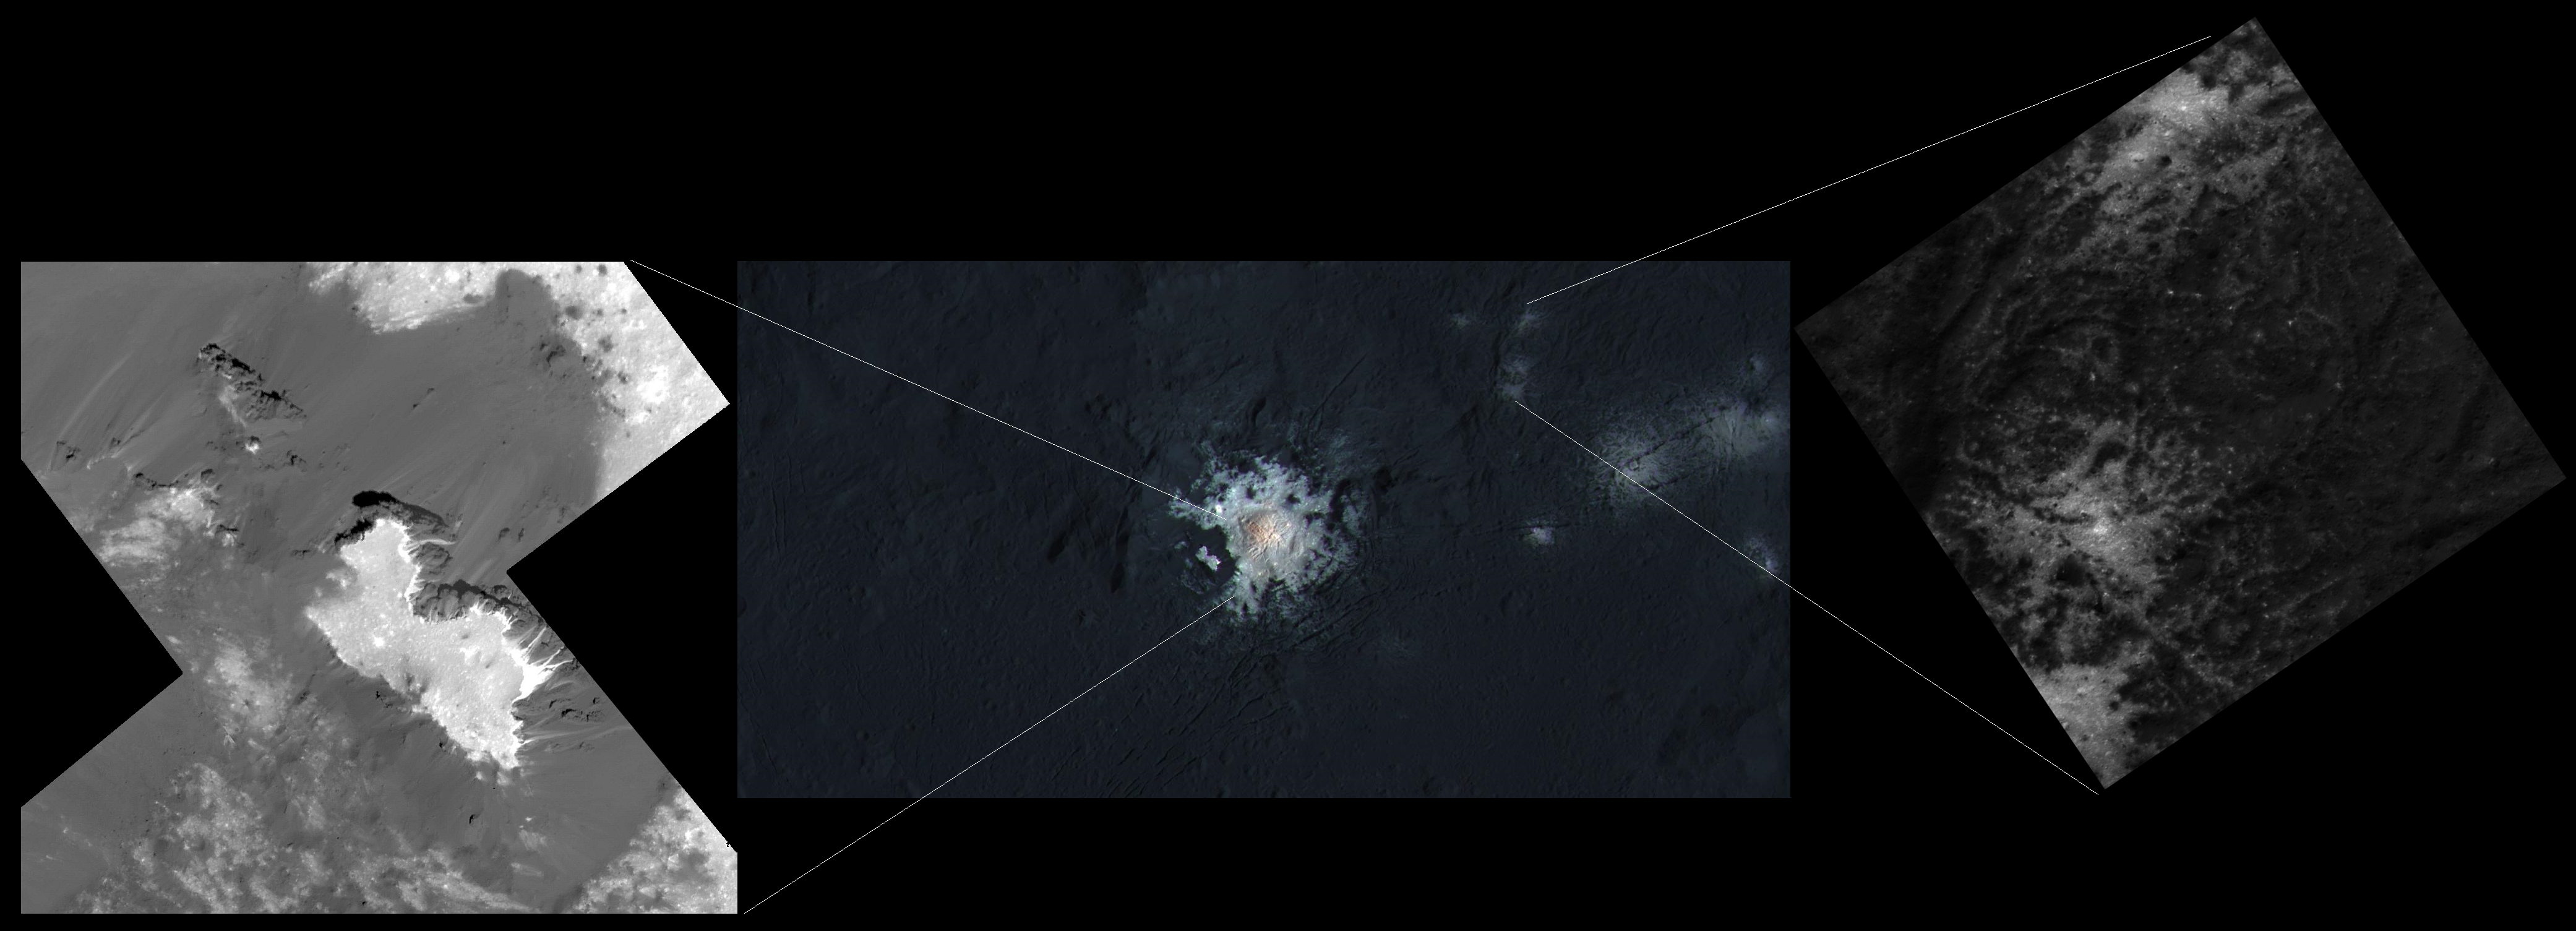 http://wonderousworlds.space/_/ceres-cerealia_facula_west_mound_and_vinalia_faculae_context.png